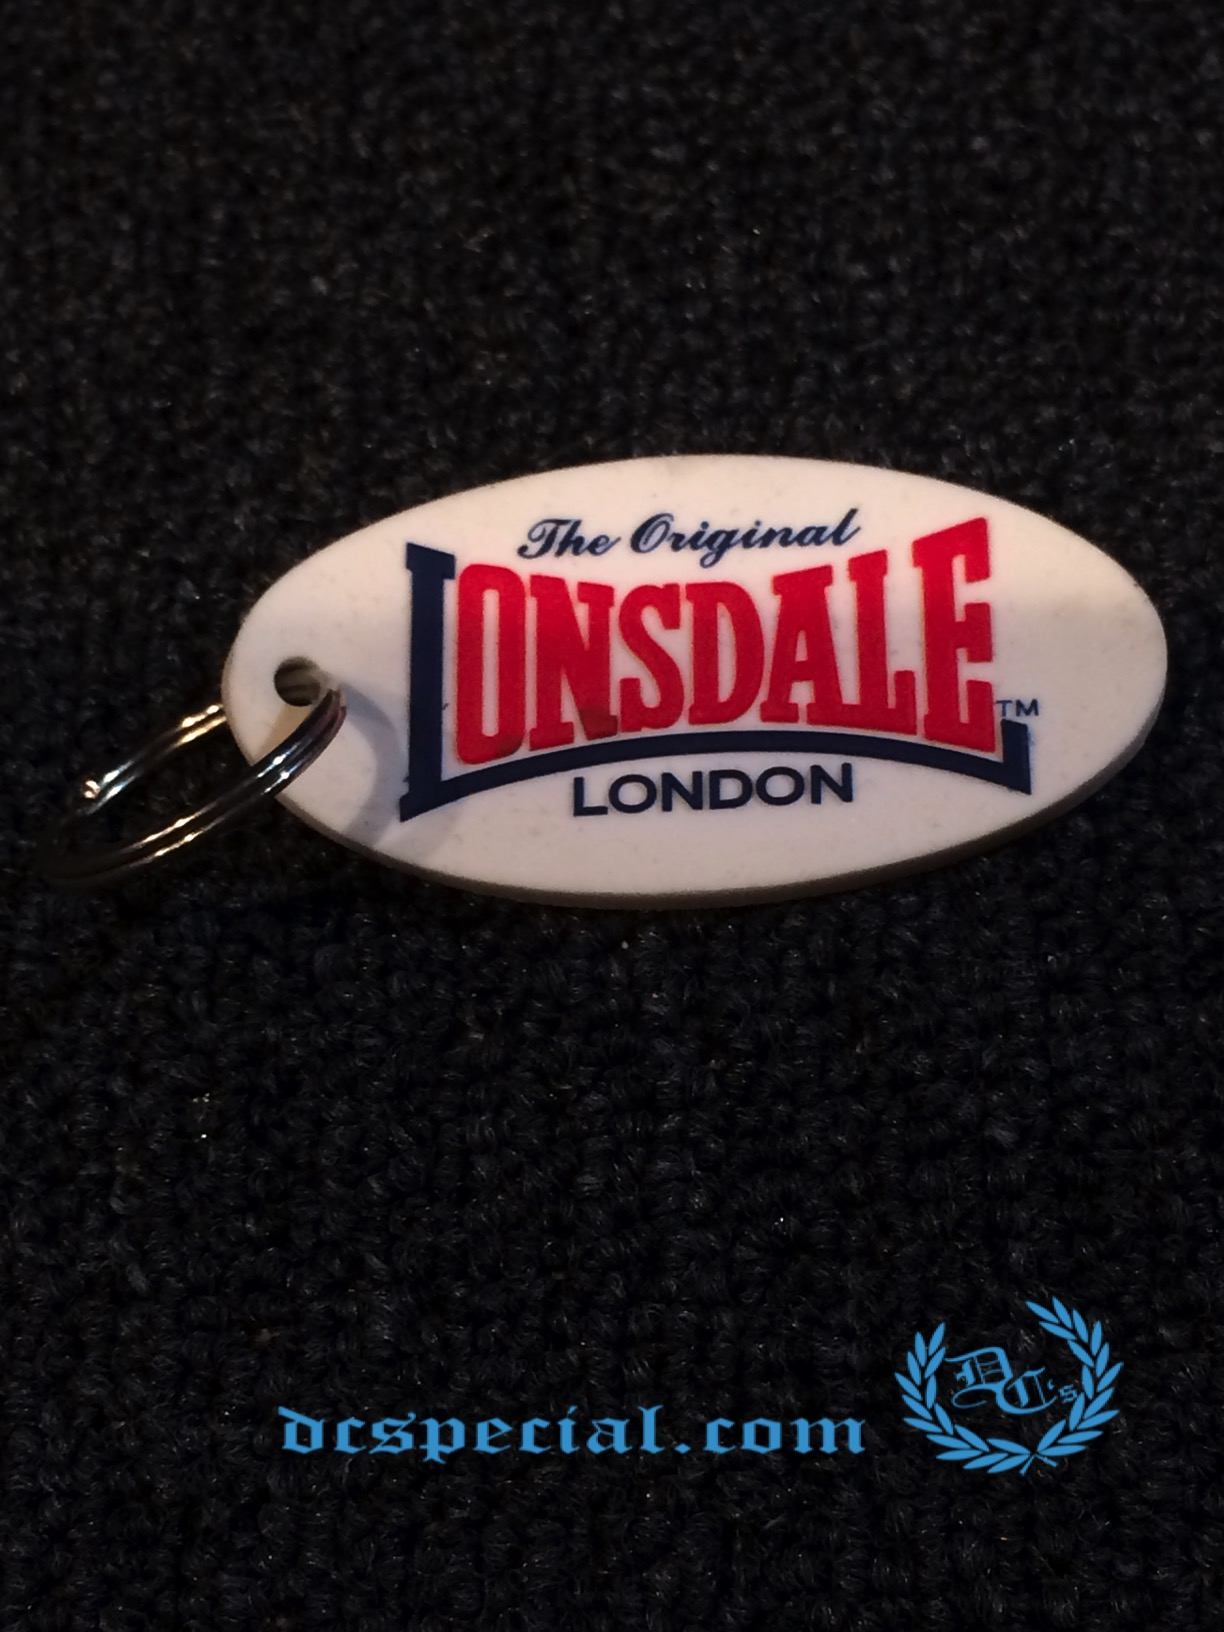 Lonsdale Keychane 'The Original'